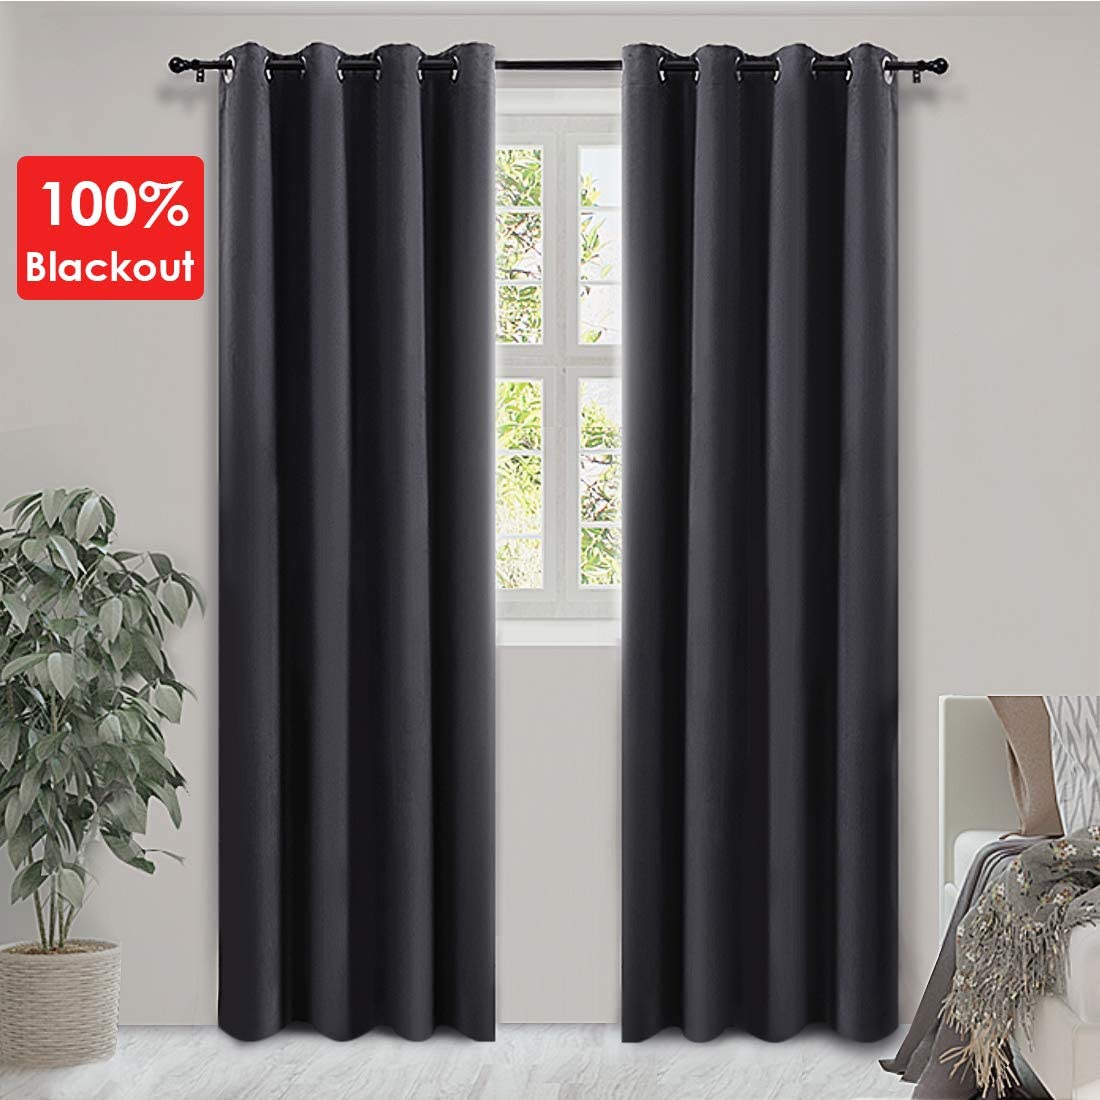 PANDATEX 100 Blackout Curtains 84 inches Long Thermal Insulated Noise Reducing Energy Saving Drapes Grommet Curtains for Living Room Bedroom Nursery Home Set of 2, Dark Grey 52W x 84L inches